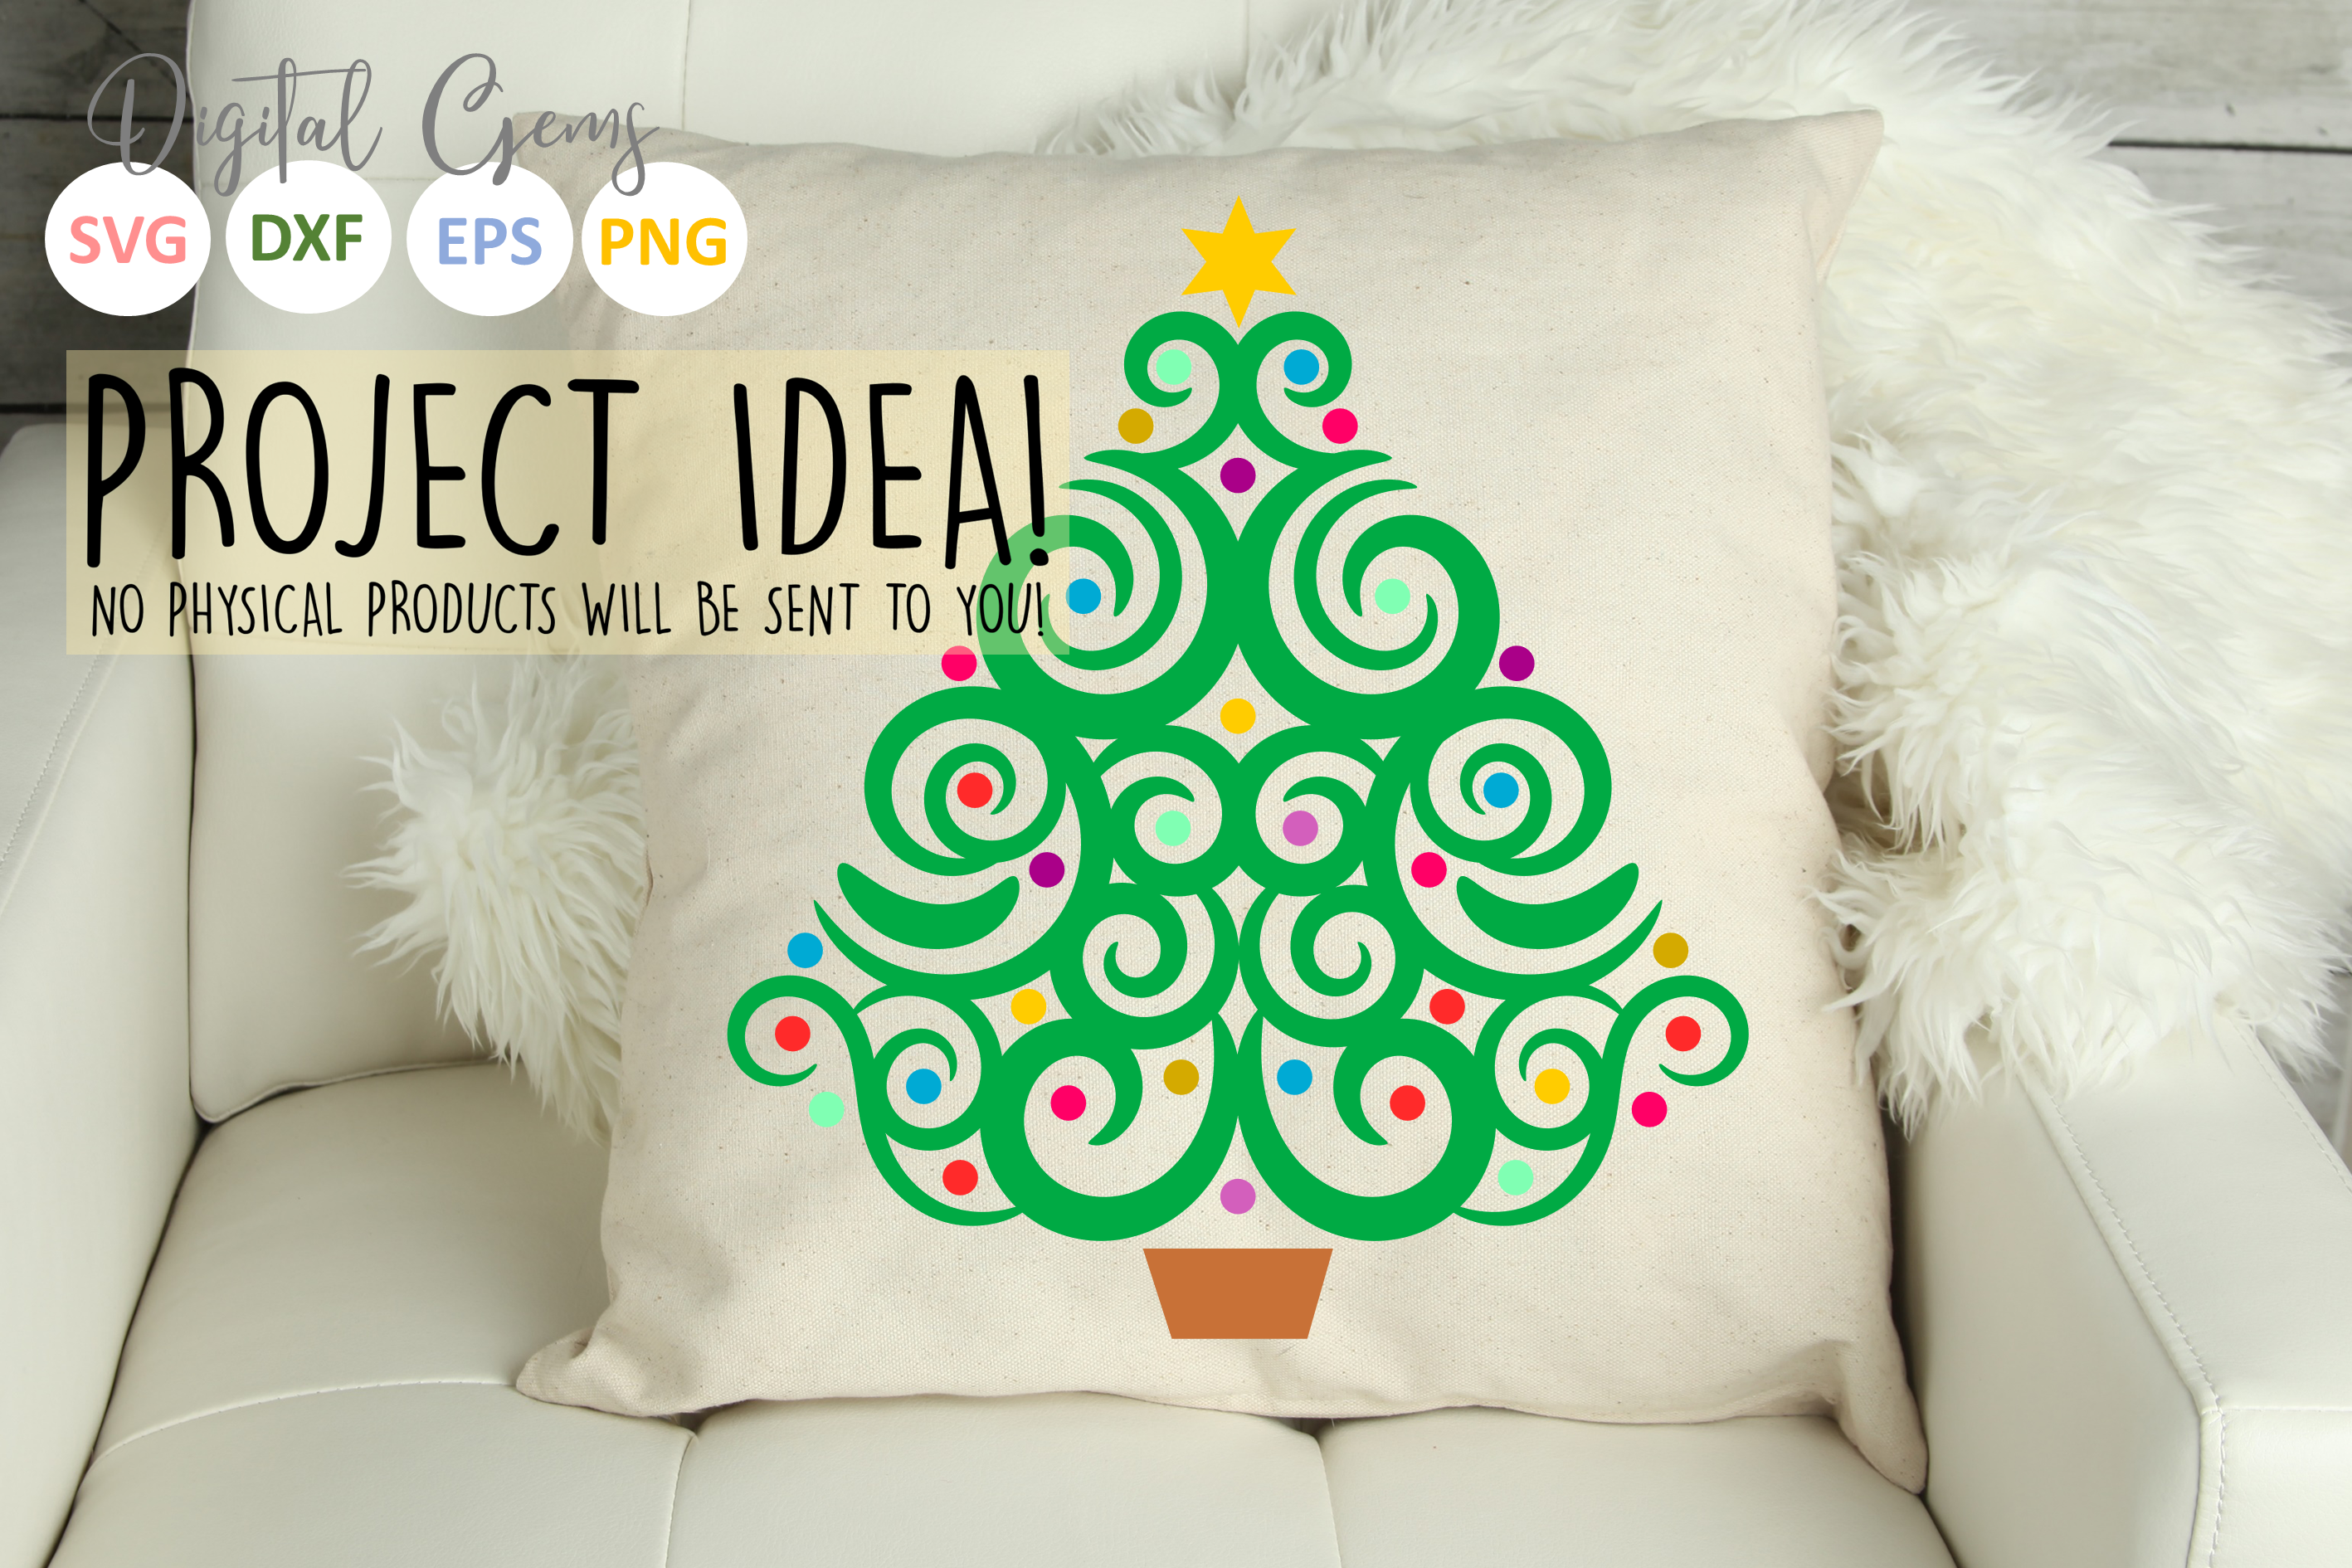 Christmas tree SVG / EPS / DXF / PNG Files example image 4